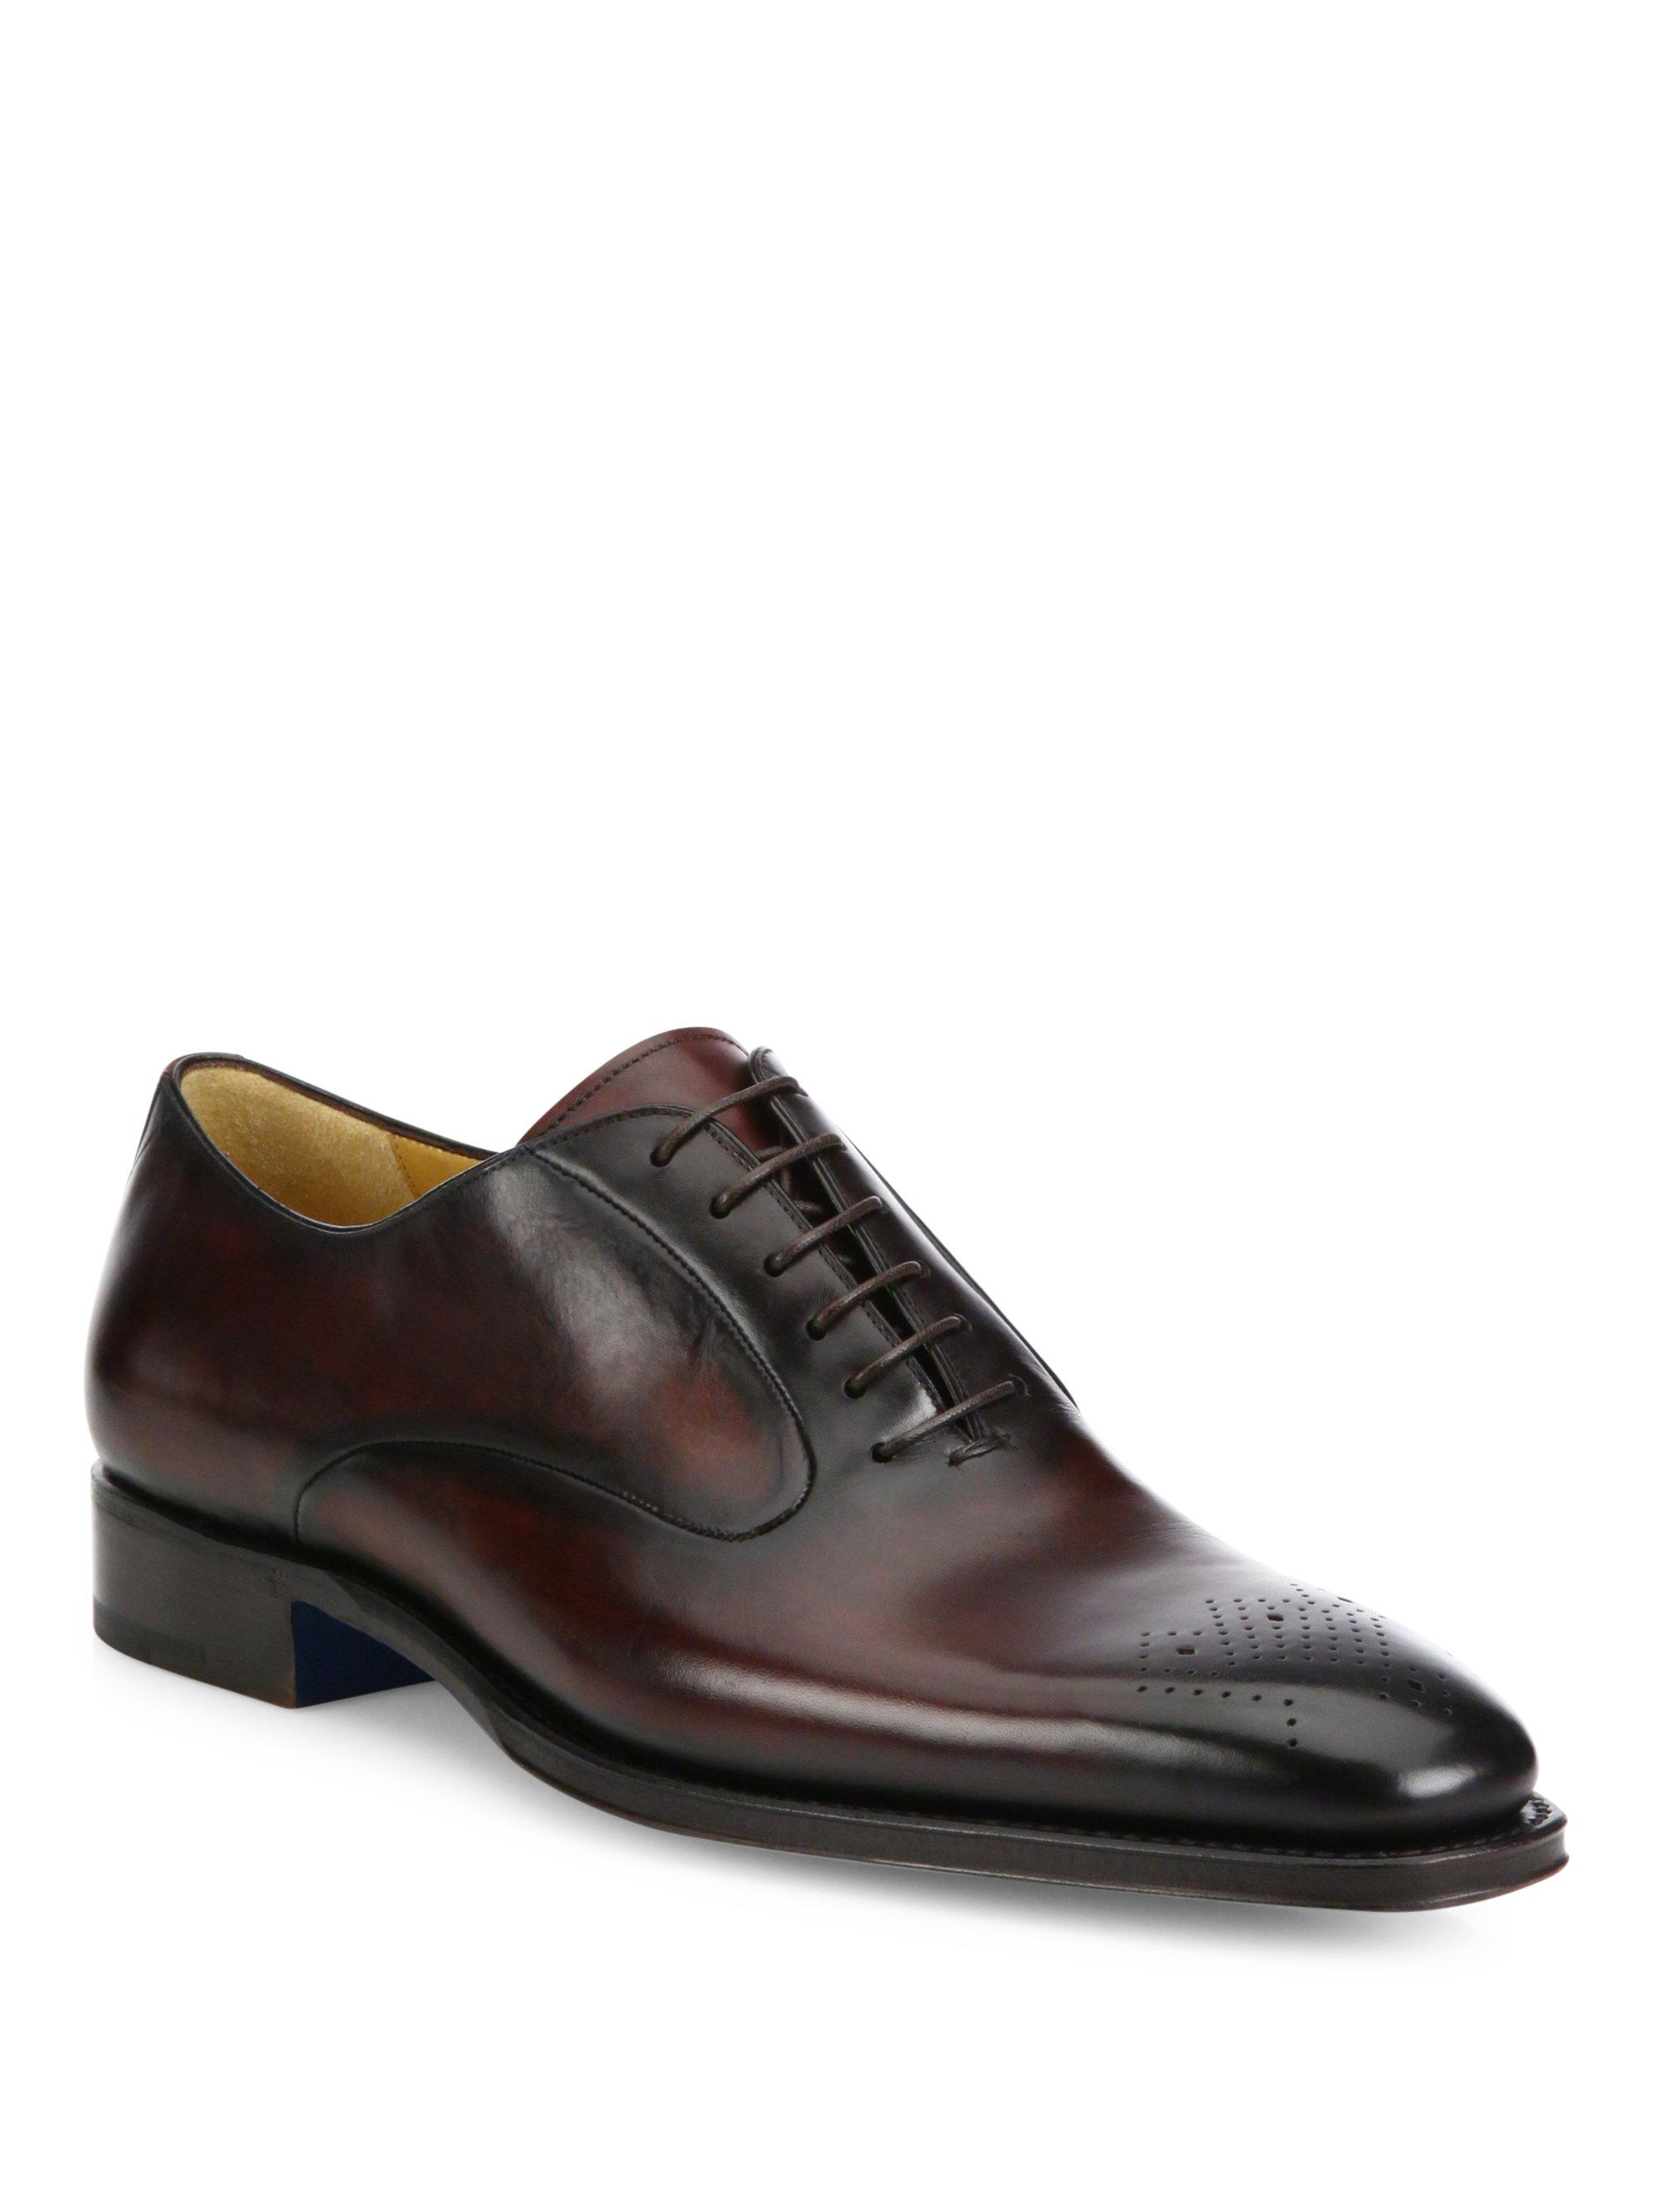 Sutor Mantellassi Brown Shoes